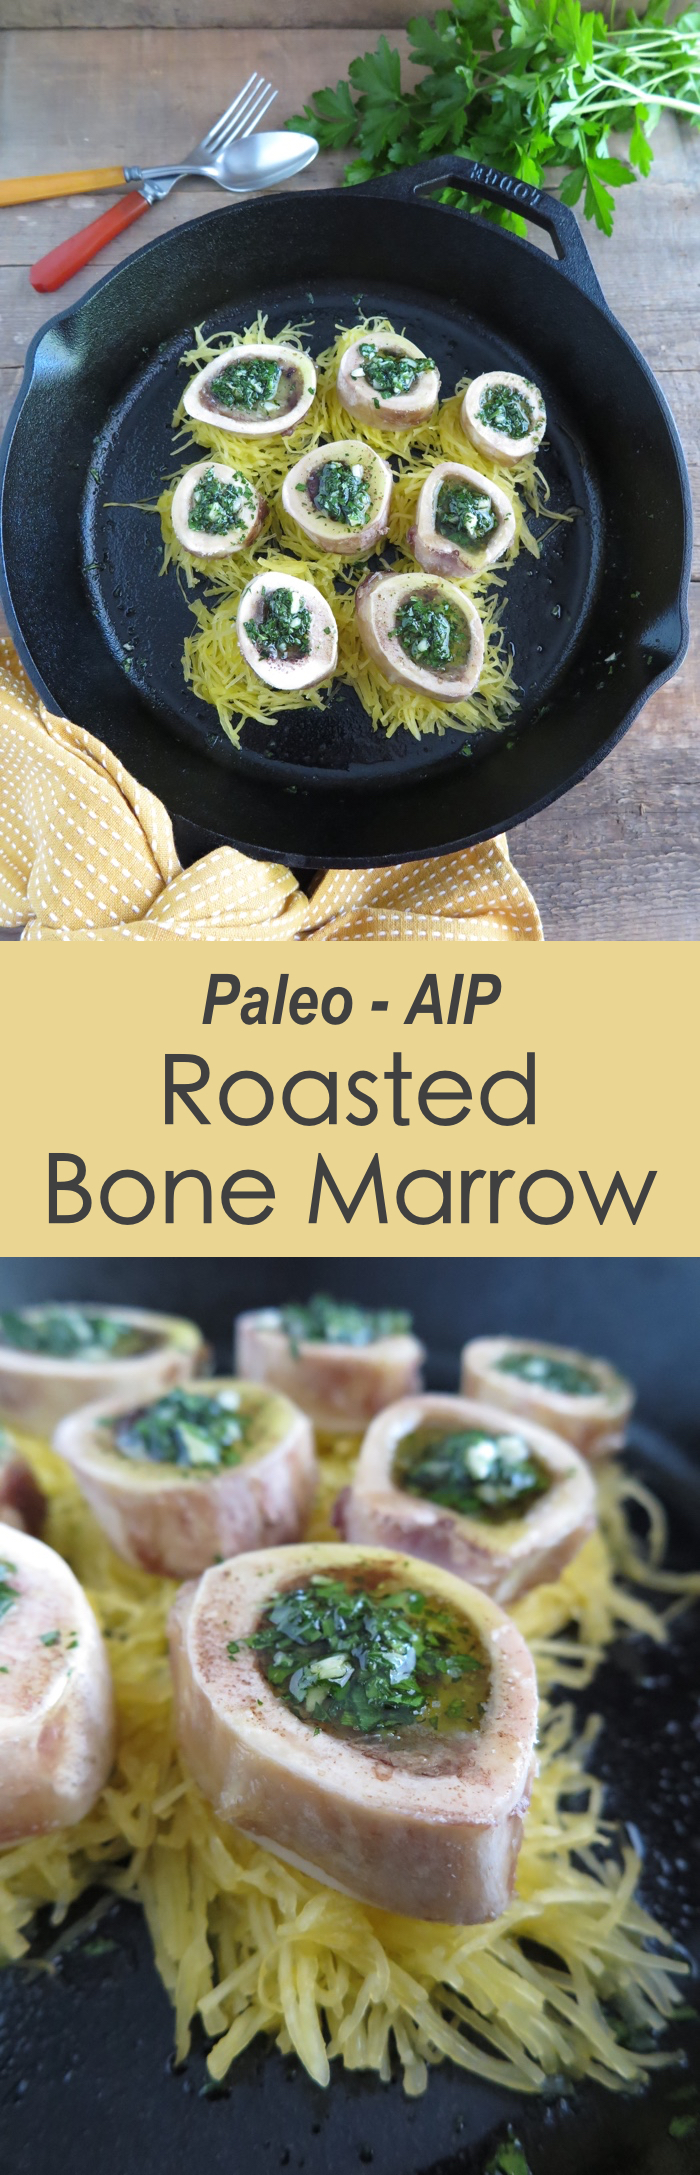 Roasted Bone Marrow (AIP, Paleo, GAPS)